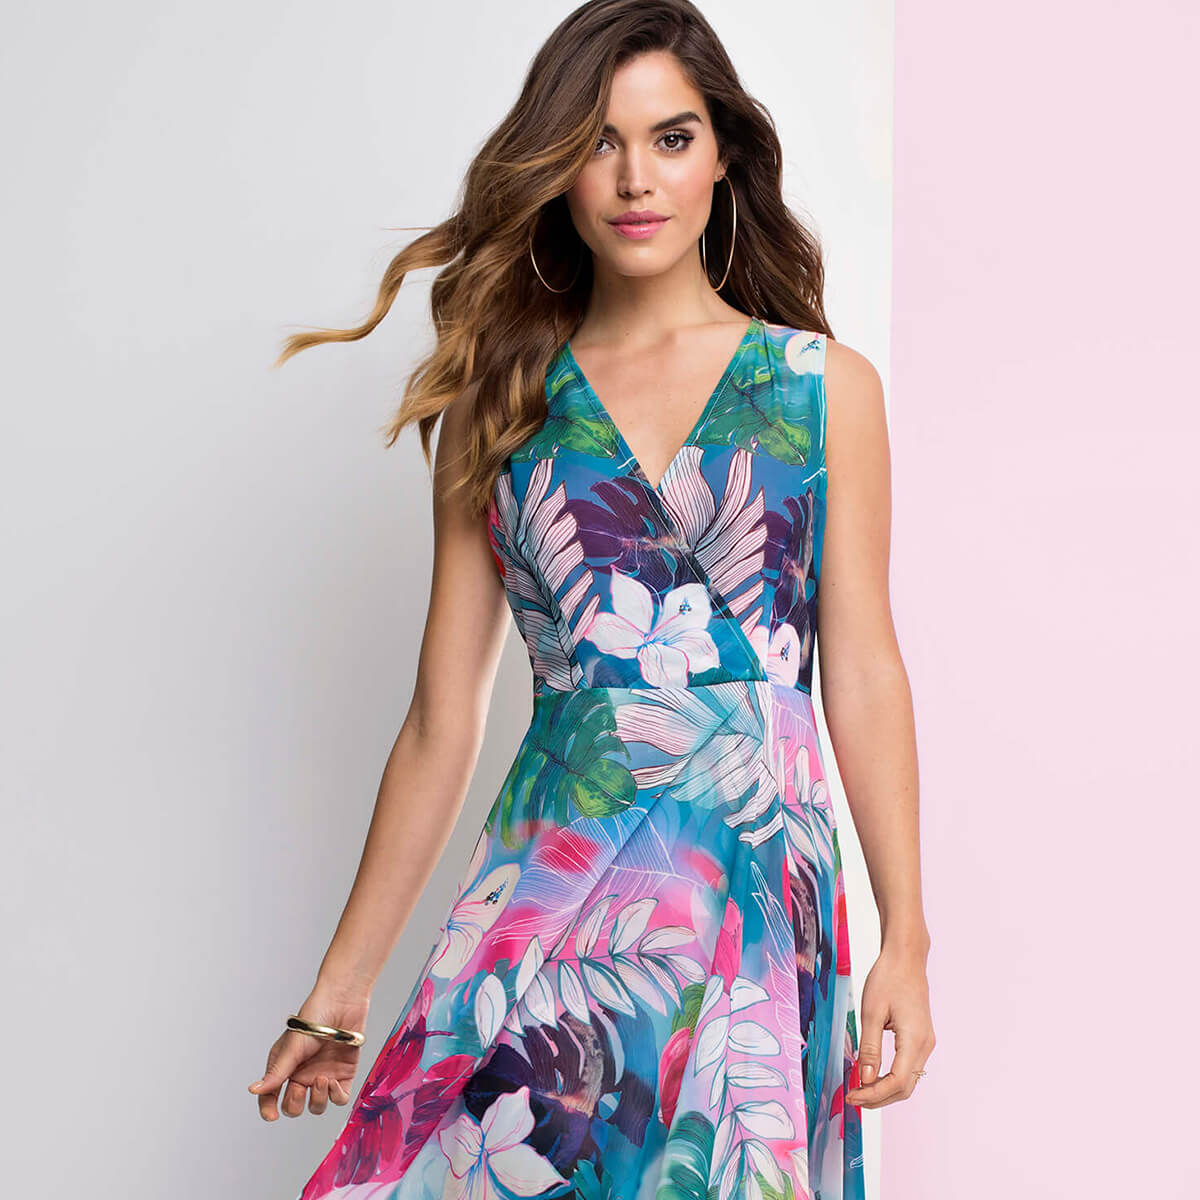 Six blooming lovely floral print summer dresses